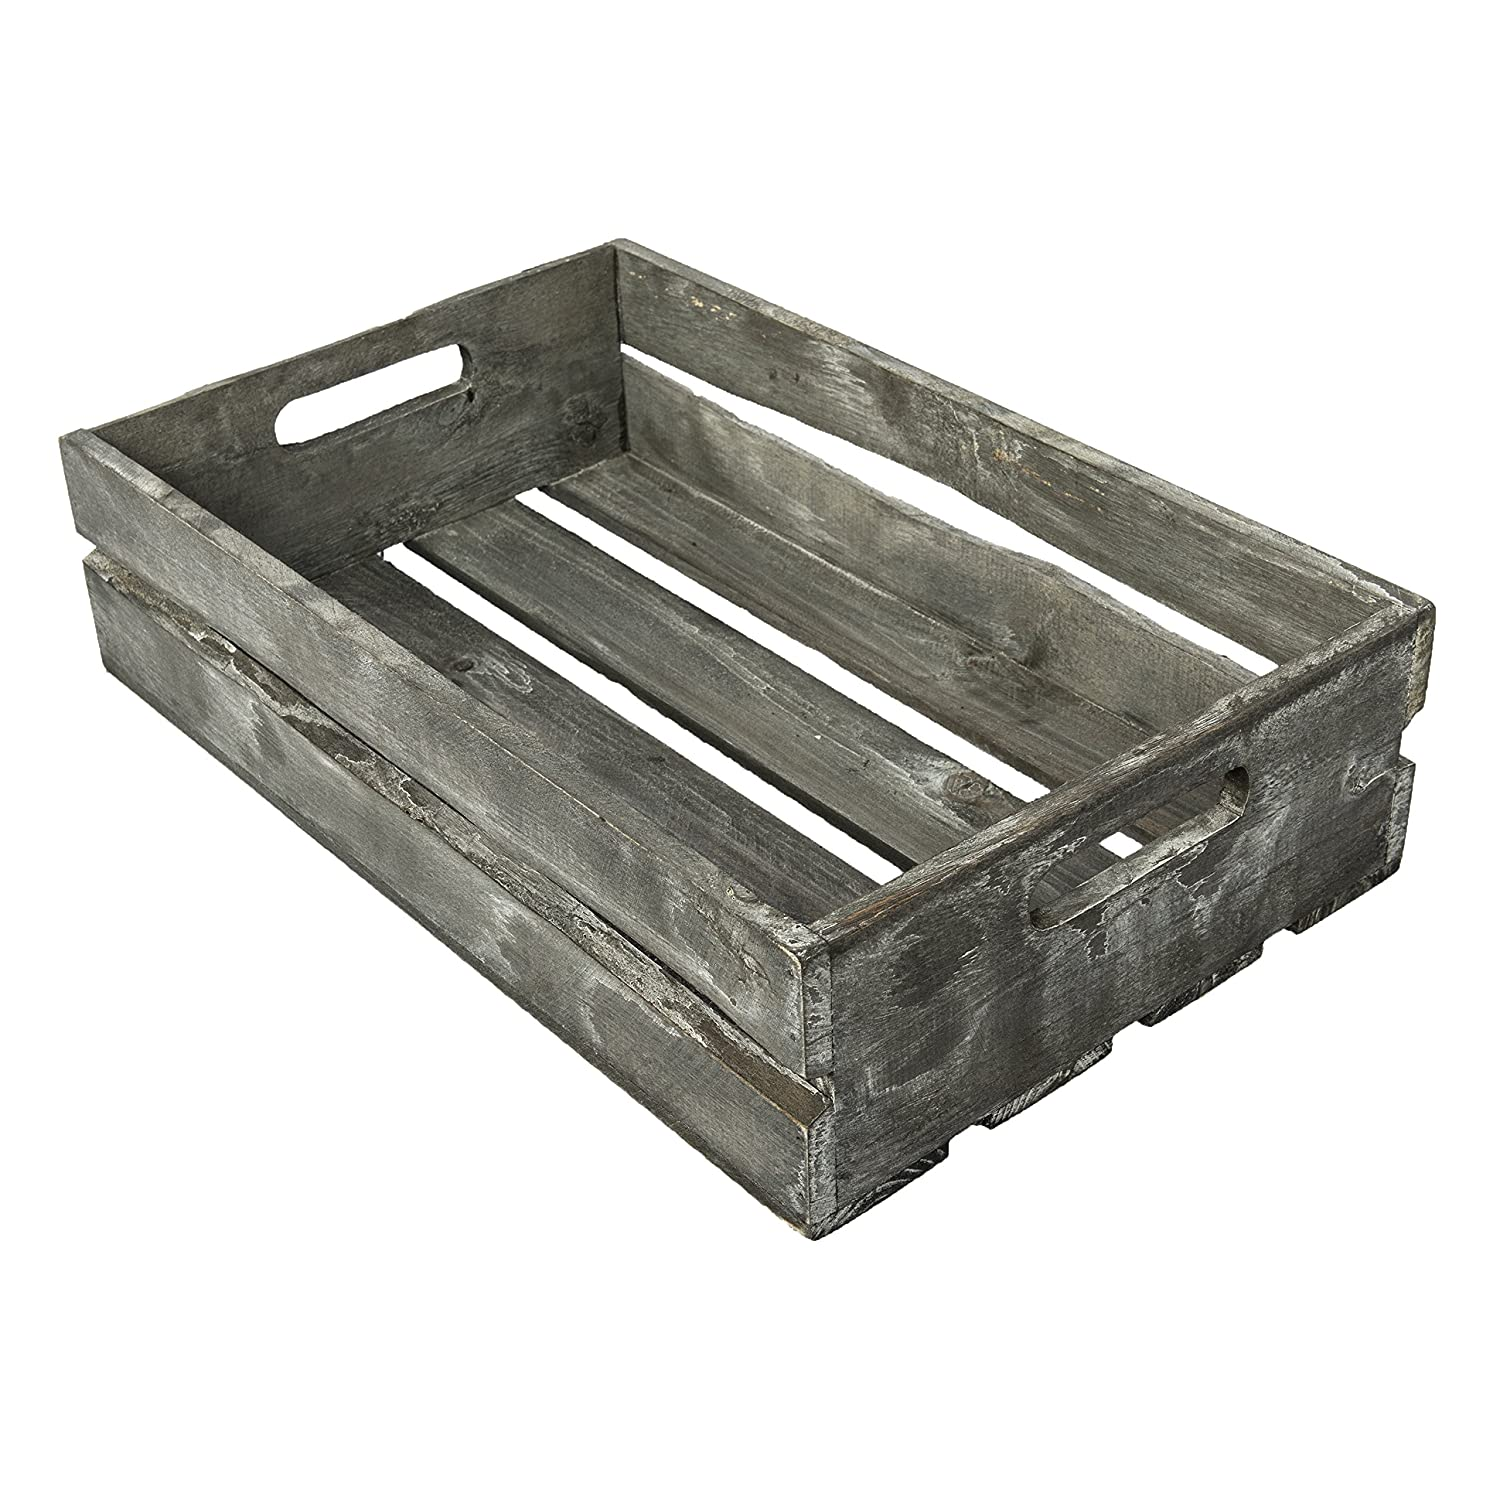 Set of 3 MyGift Farmhouse Style Barnwood Gray Wood Nesting Crates Rustic Open Top Storage Pallet Boxes